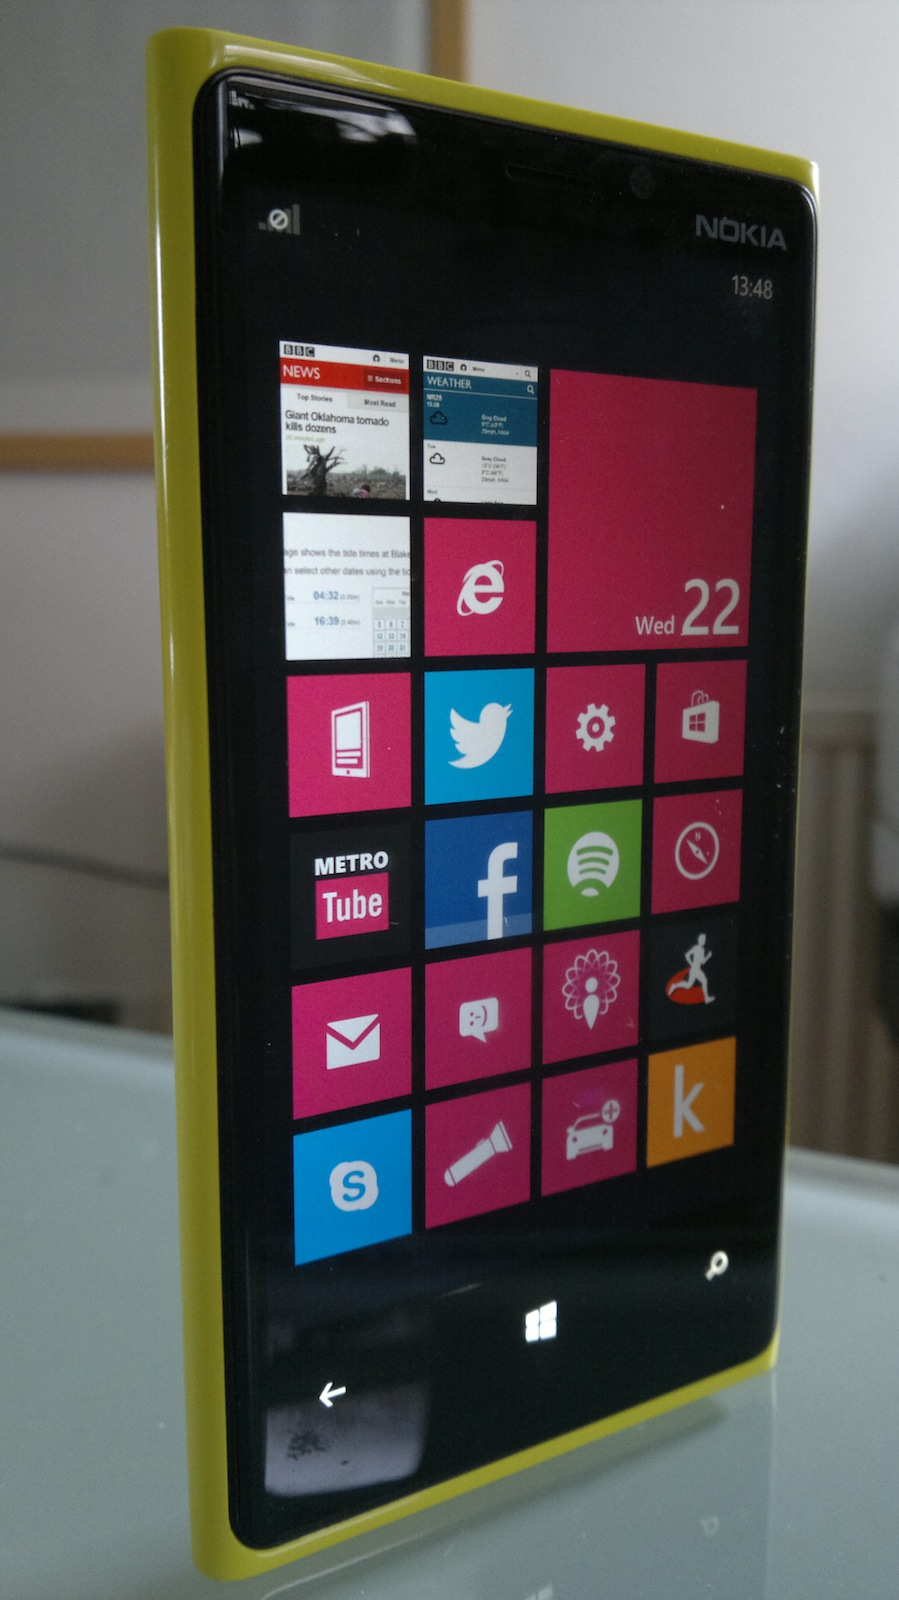 Nokia Lumia 920 standing upright